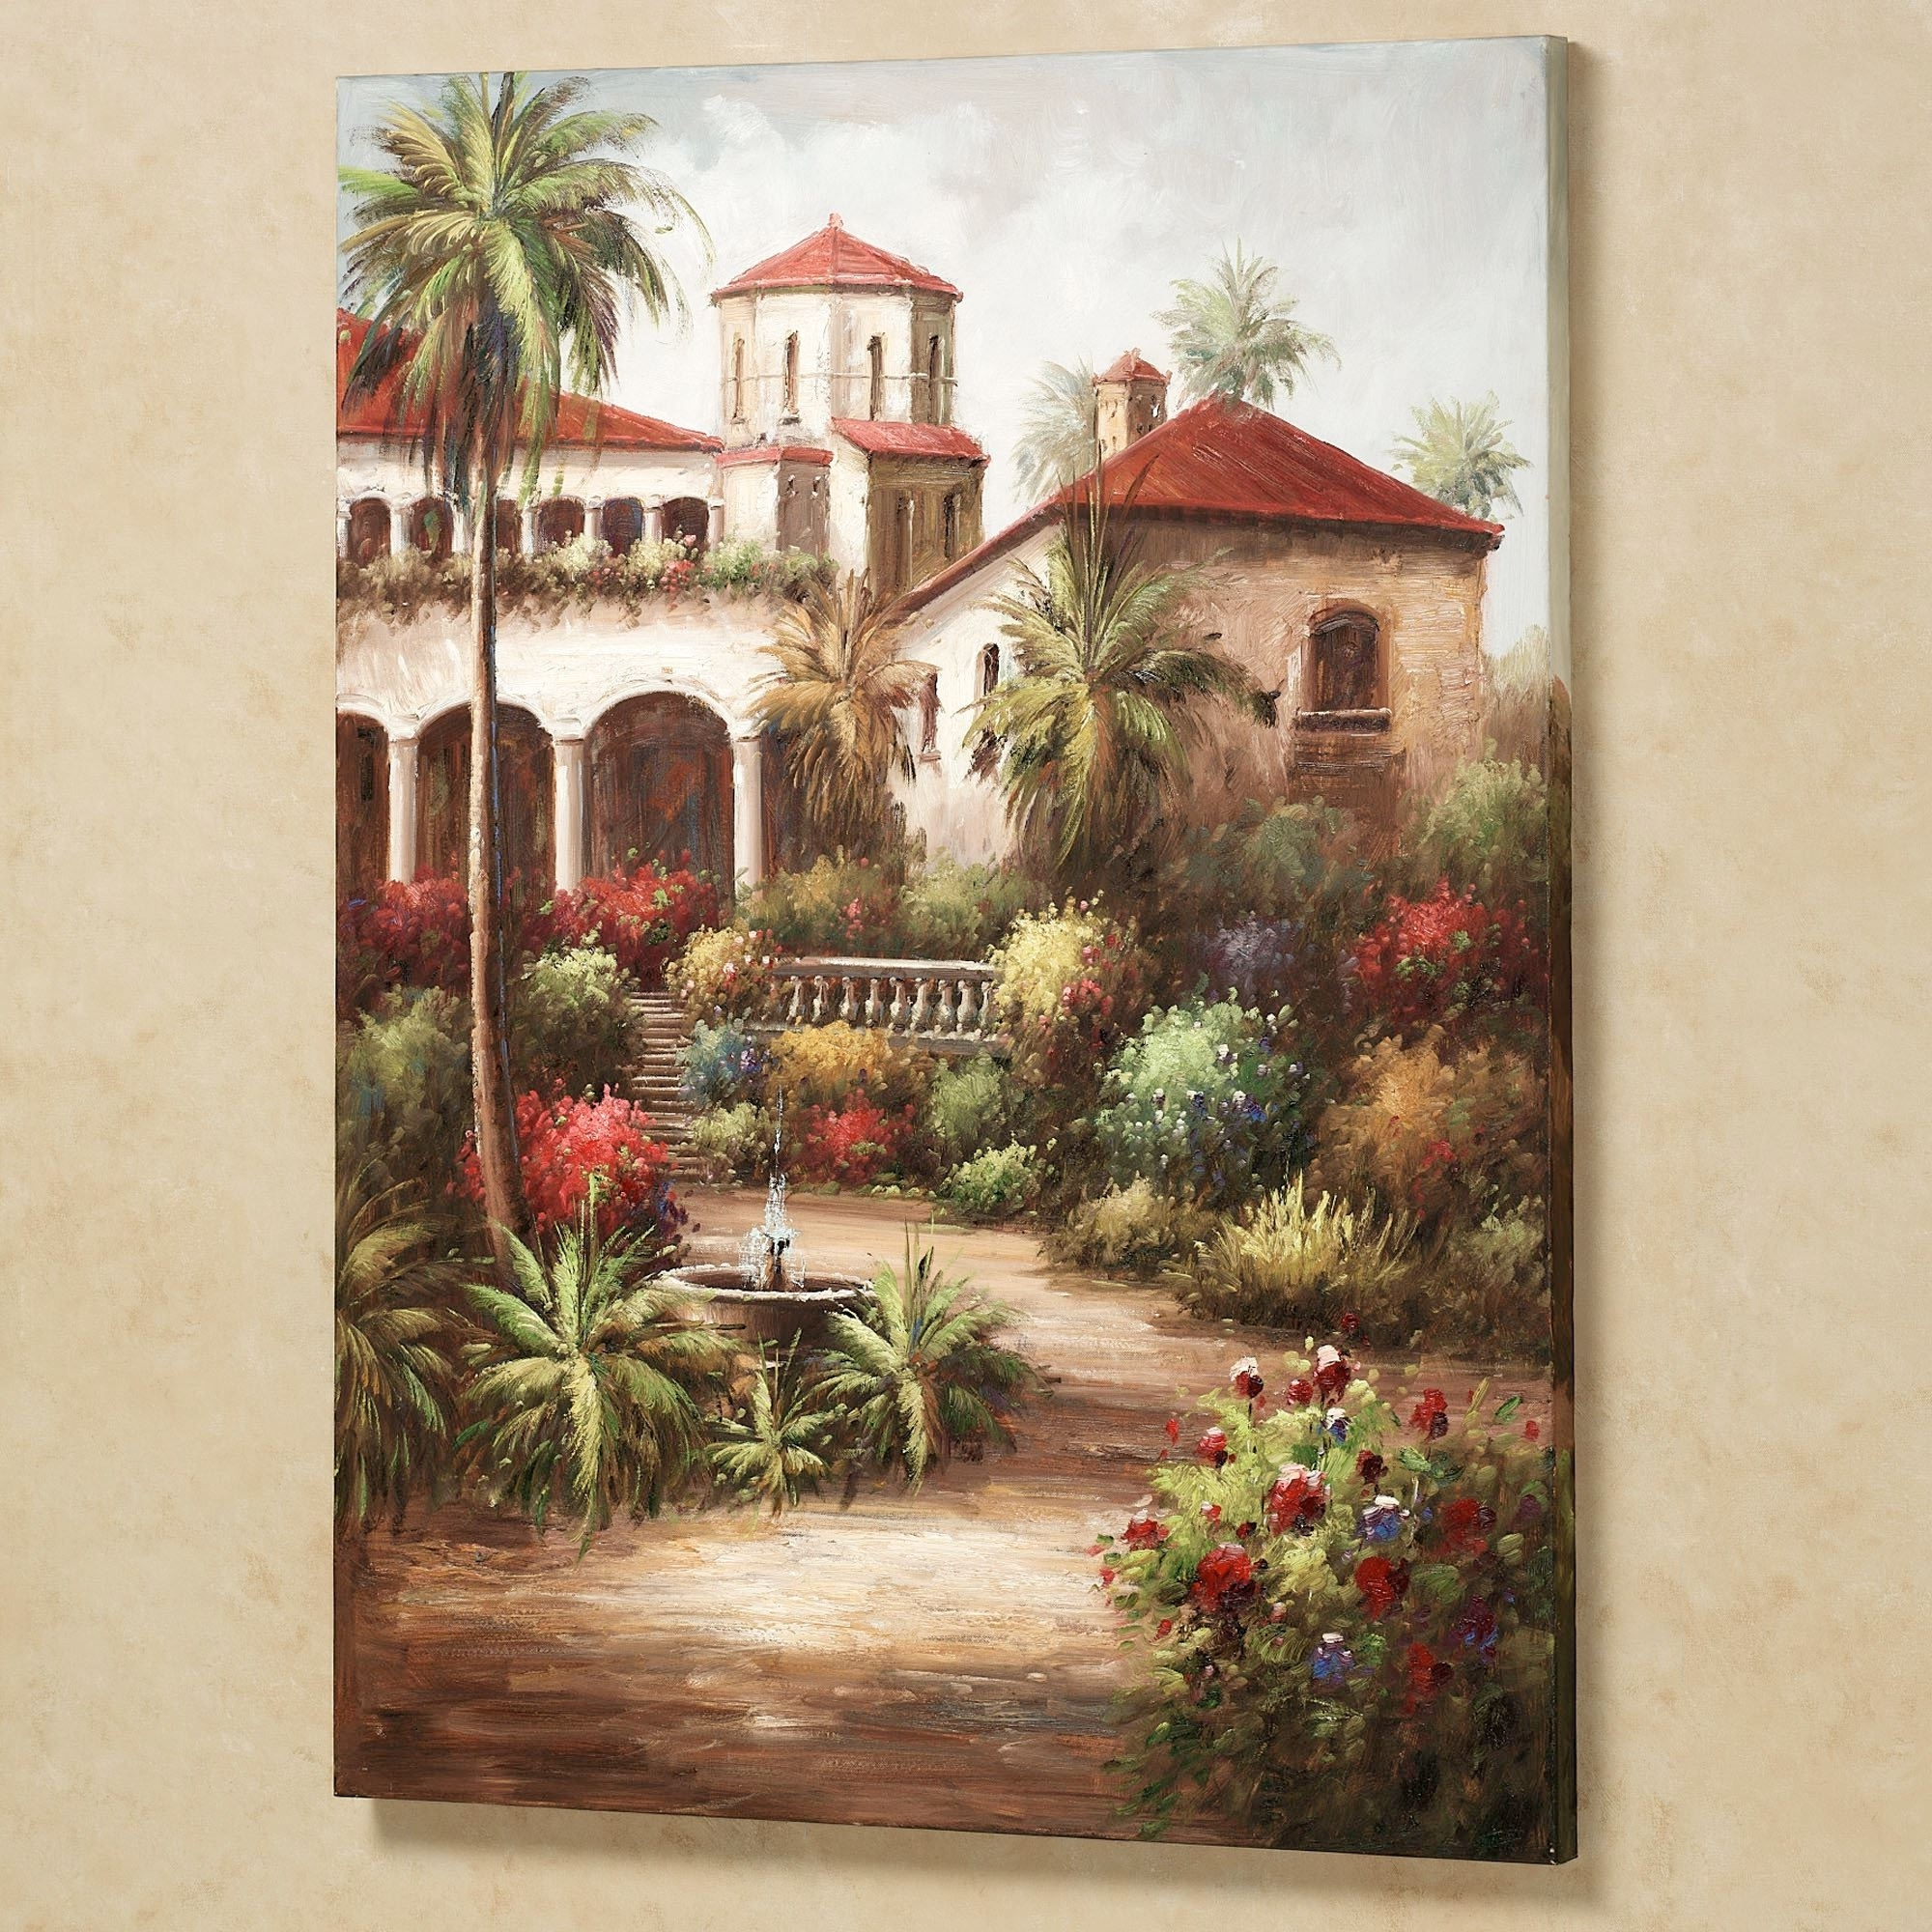 Popular Tuscan Wall Art Garden – Awesome House : Kitchen Tuscan Wall Art Tile With Regard To Tuscan Wall Art (View 3 of 15)